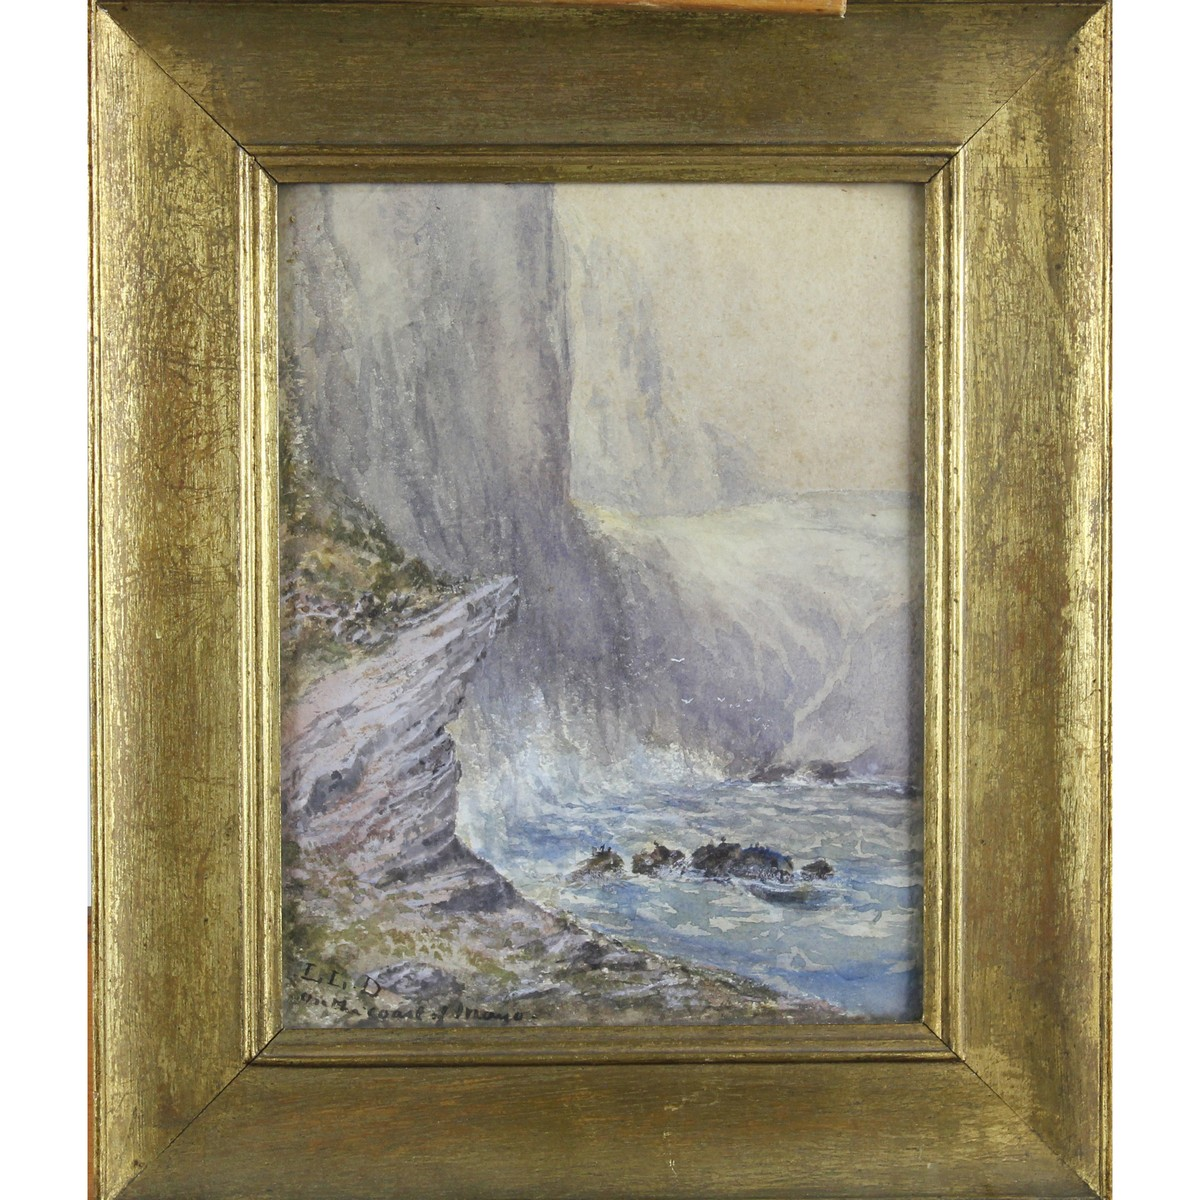 Lot 25 - Lucien Levy-Dhurmer 1865-1953 French AR, On the Coast Of Mayo.